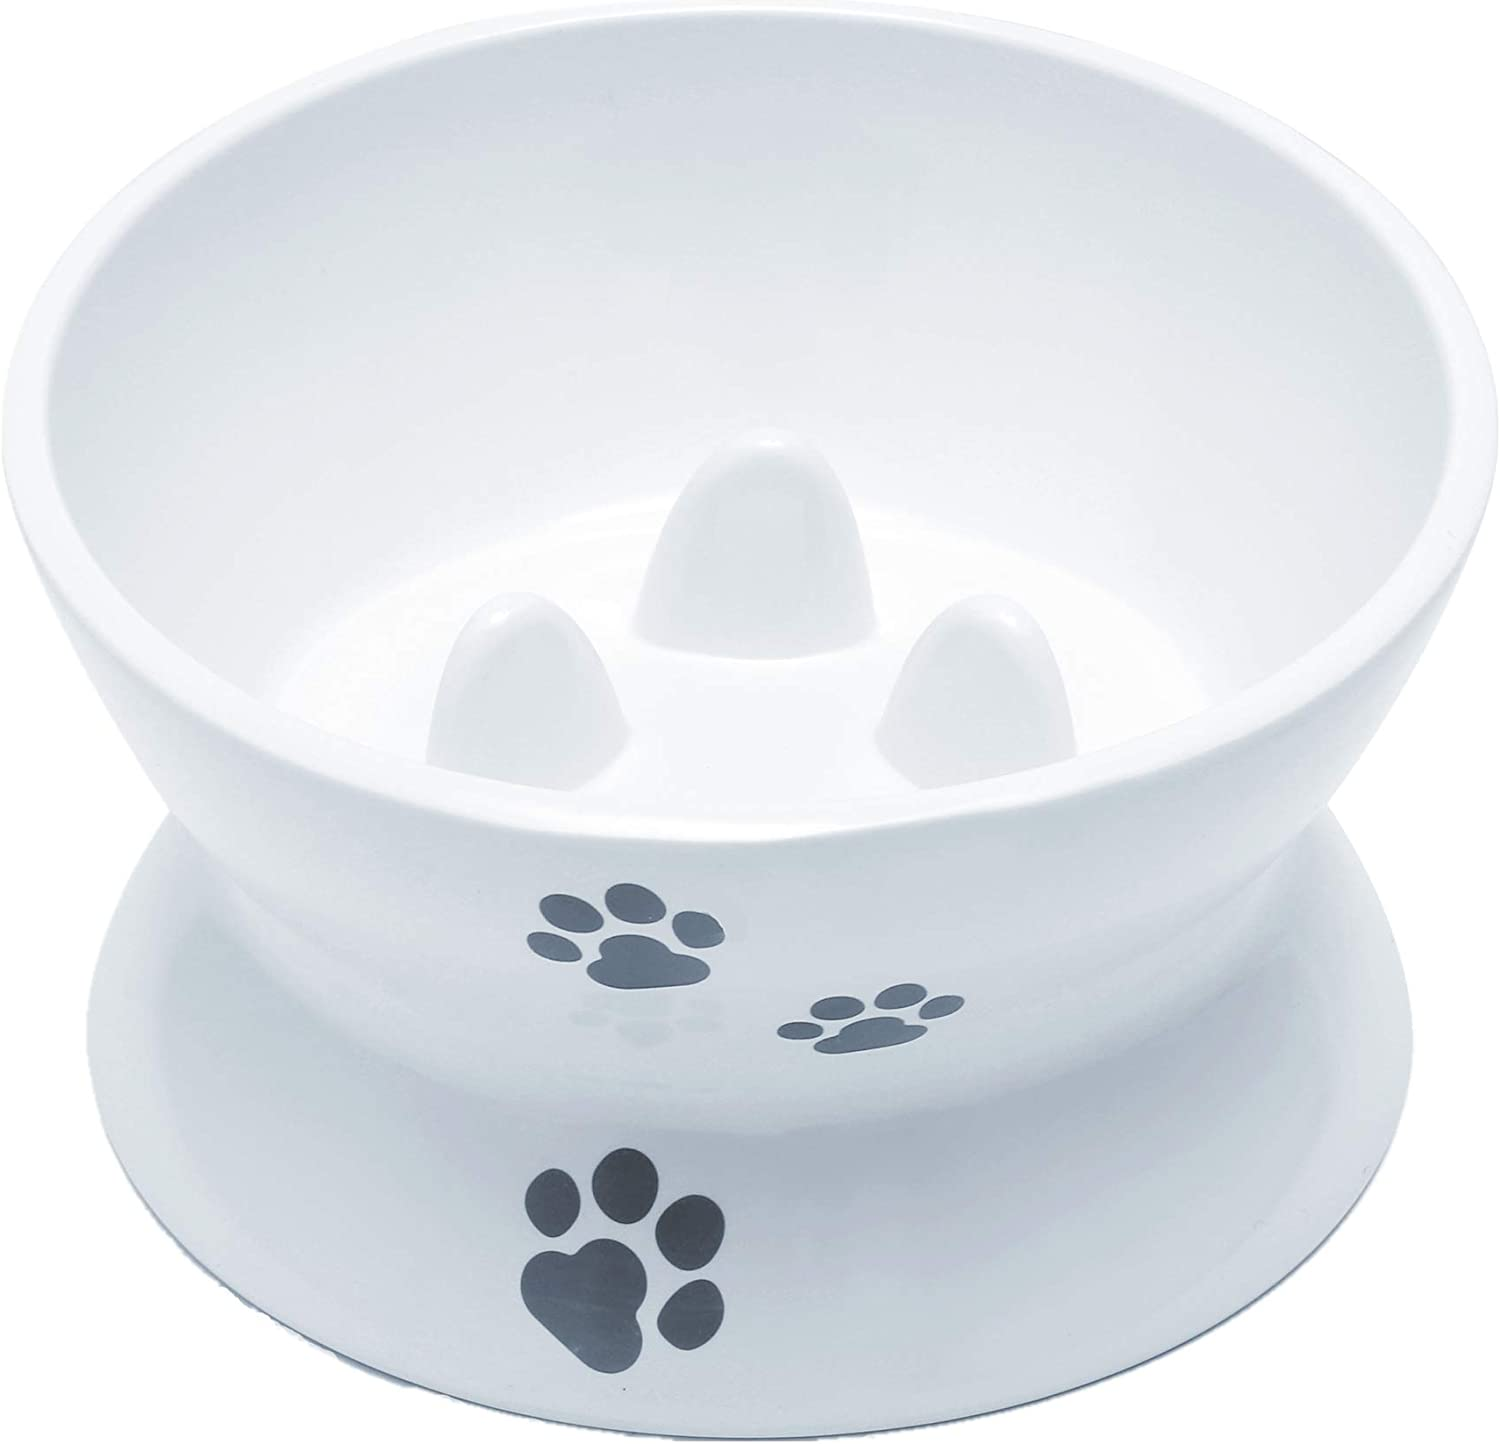 RoyalCare Raised Cat Bowl Elevated Slow Feeder No Spill Melamine Stress Free Pet Feeder and Waterer,Backflow Prevention, Gift for Cat